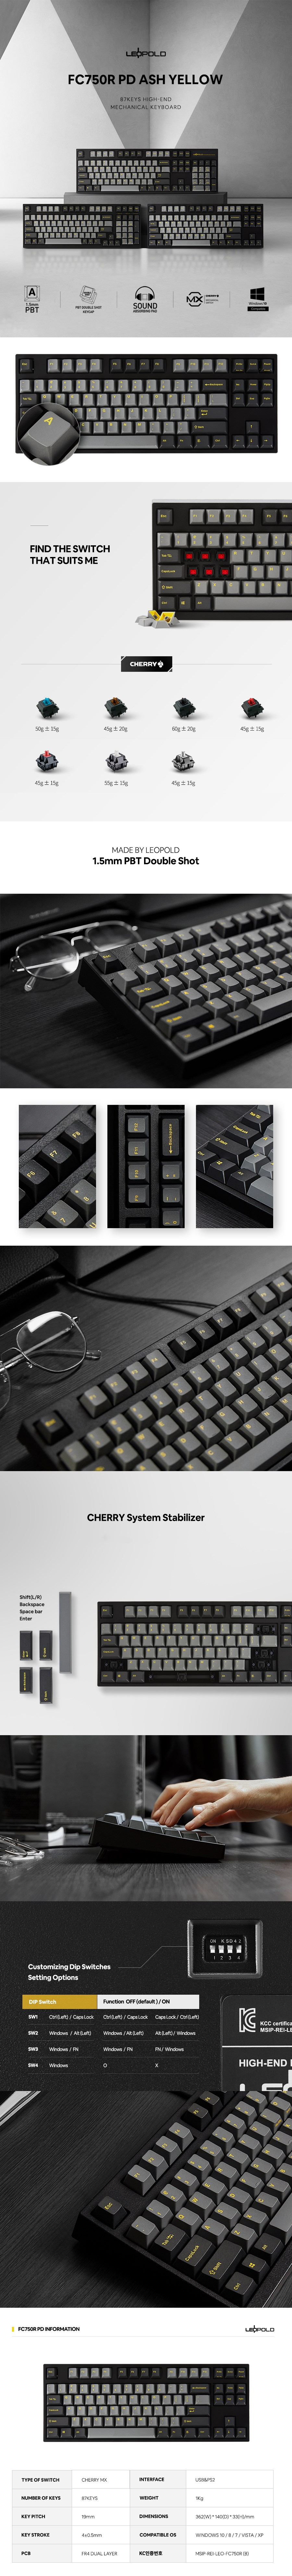 Leopold FC750R Ash YF TKL Mechanical Keyboard - Overview 1